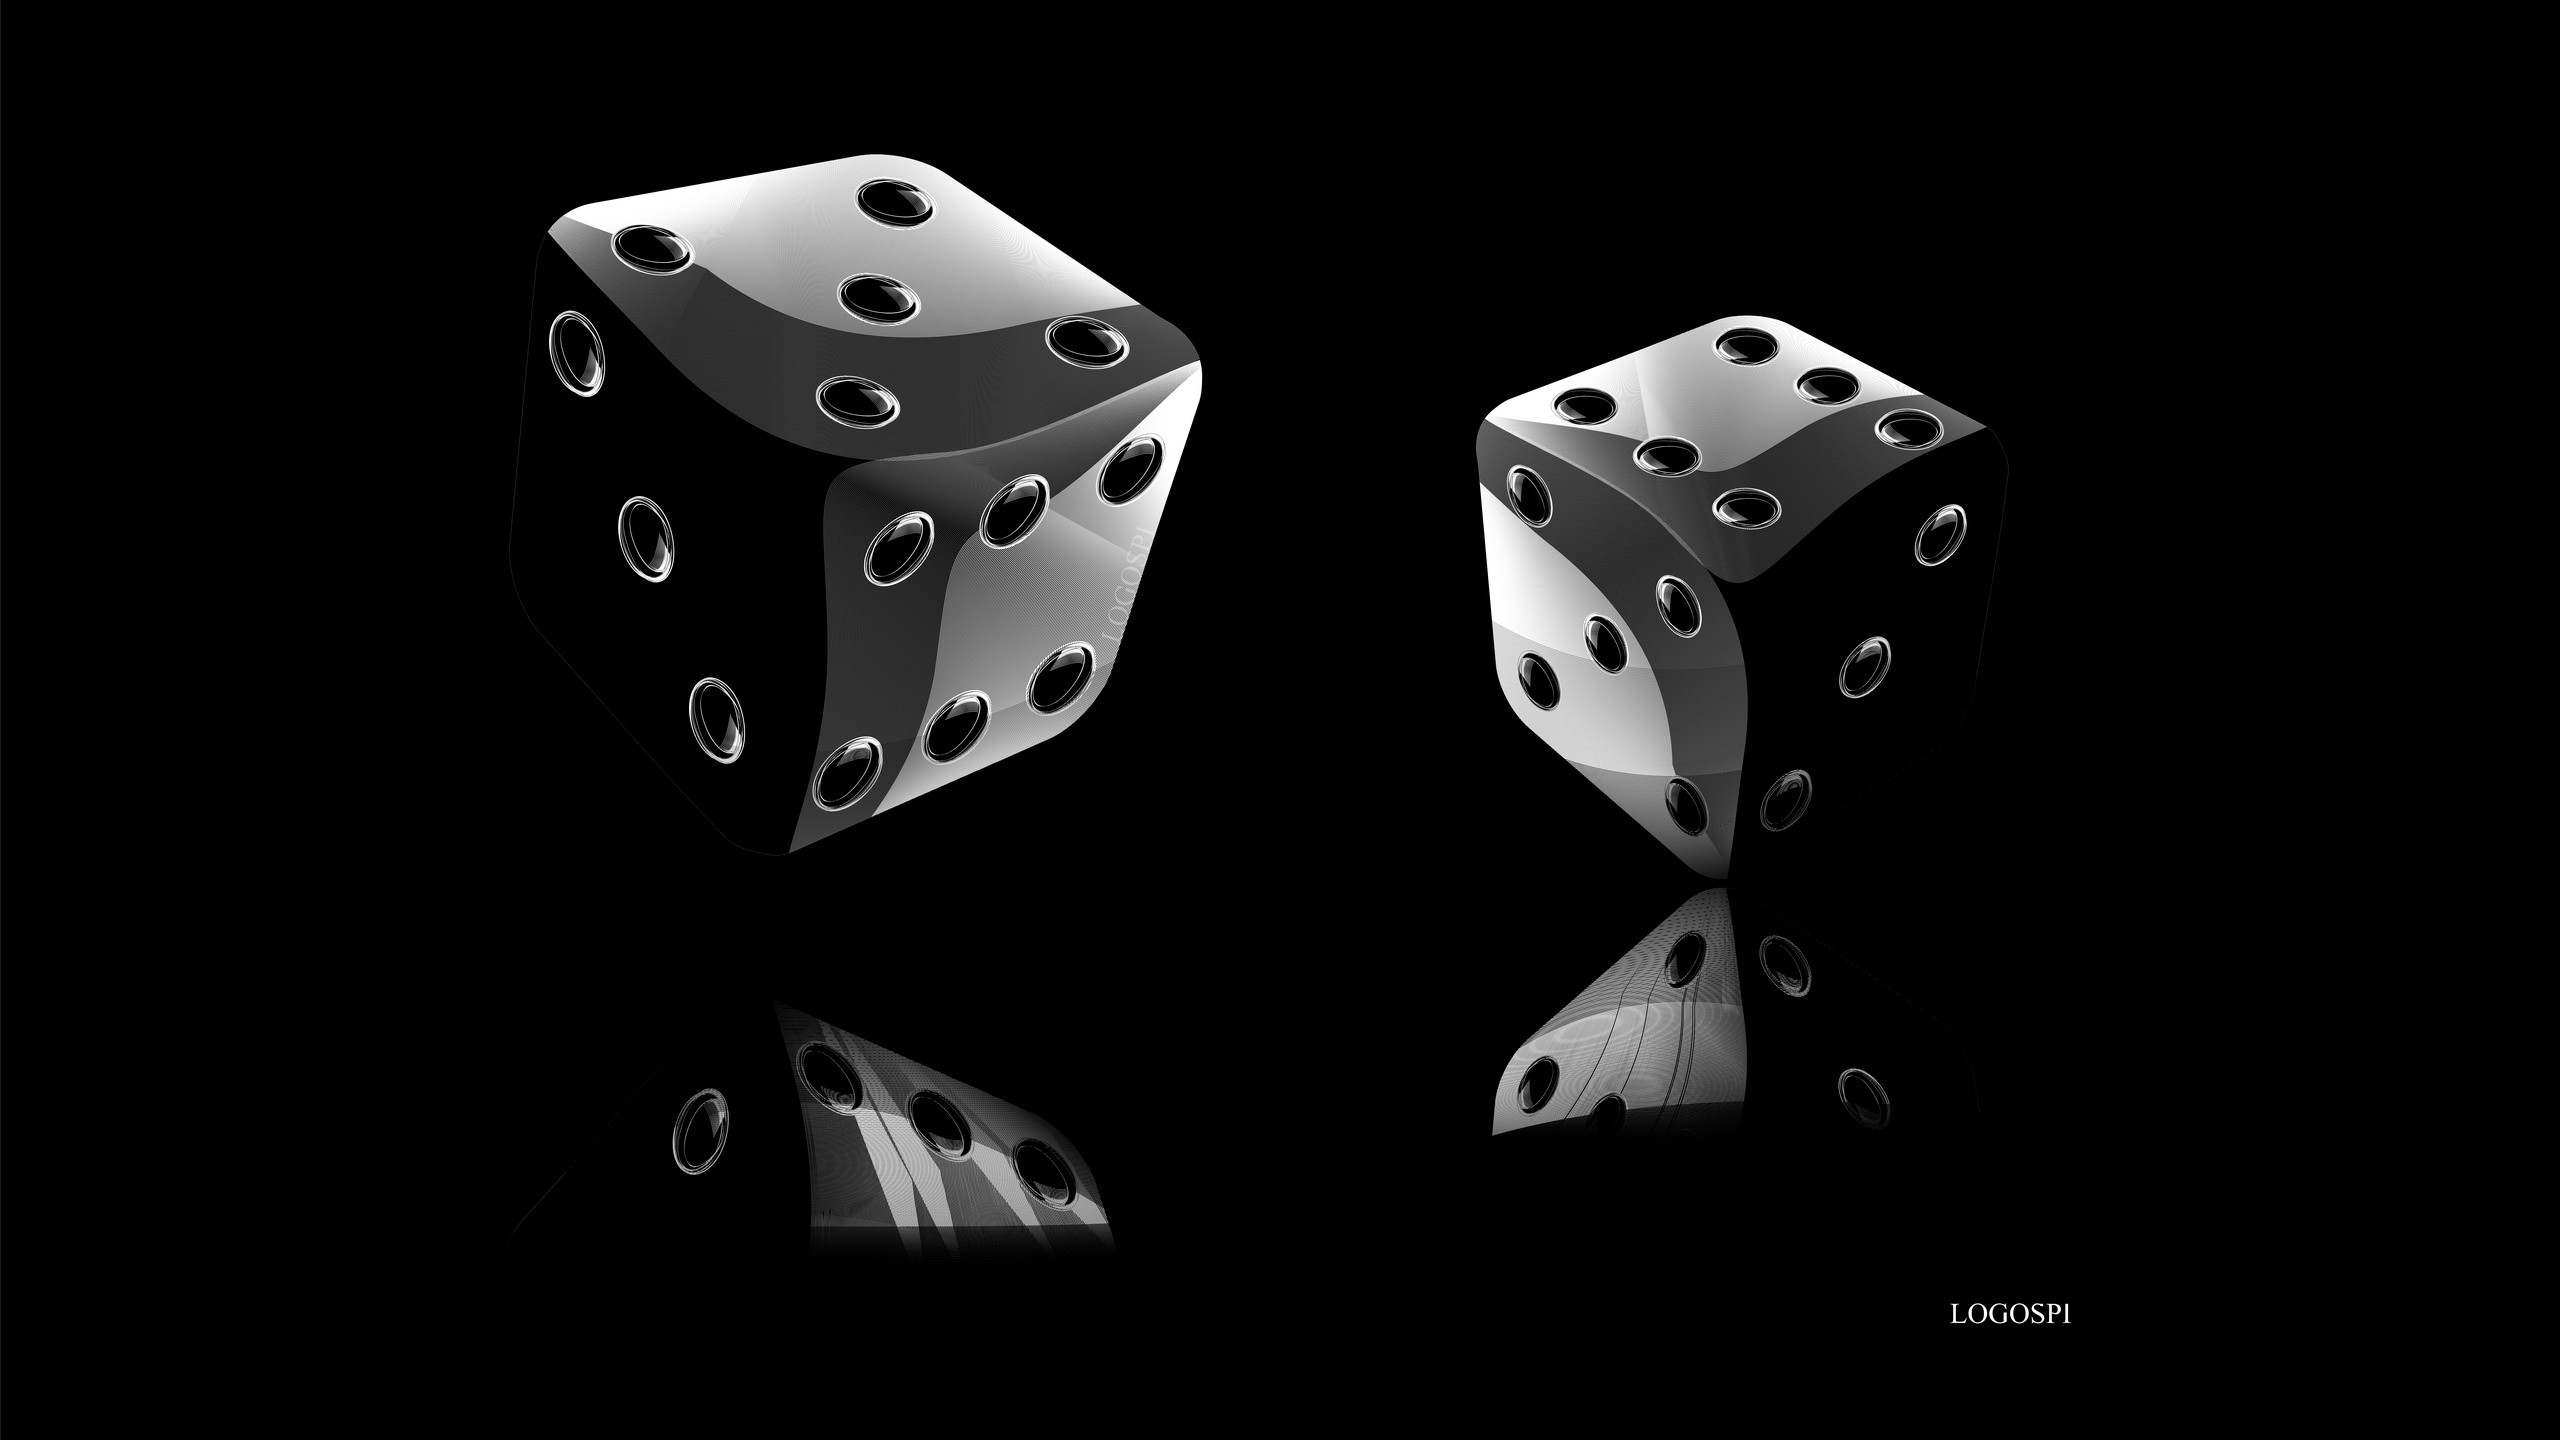 black dices. How to set wallpaper on your desktop? Click the  download link from above and set the wallpaper on the desktop from your OS.